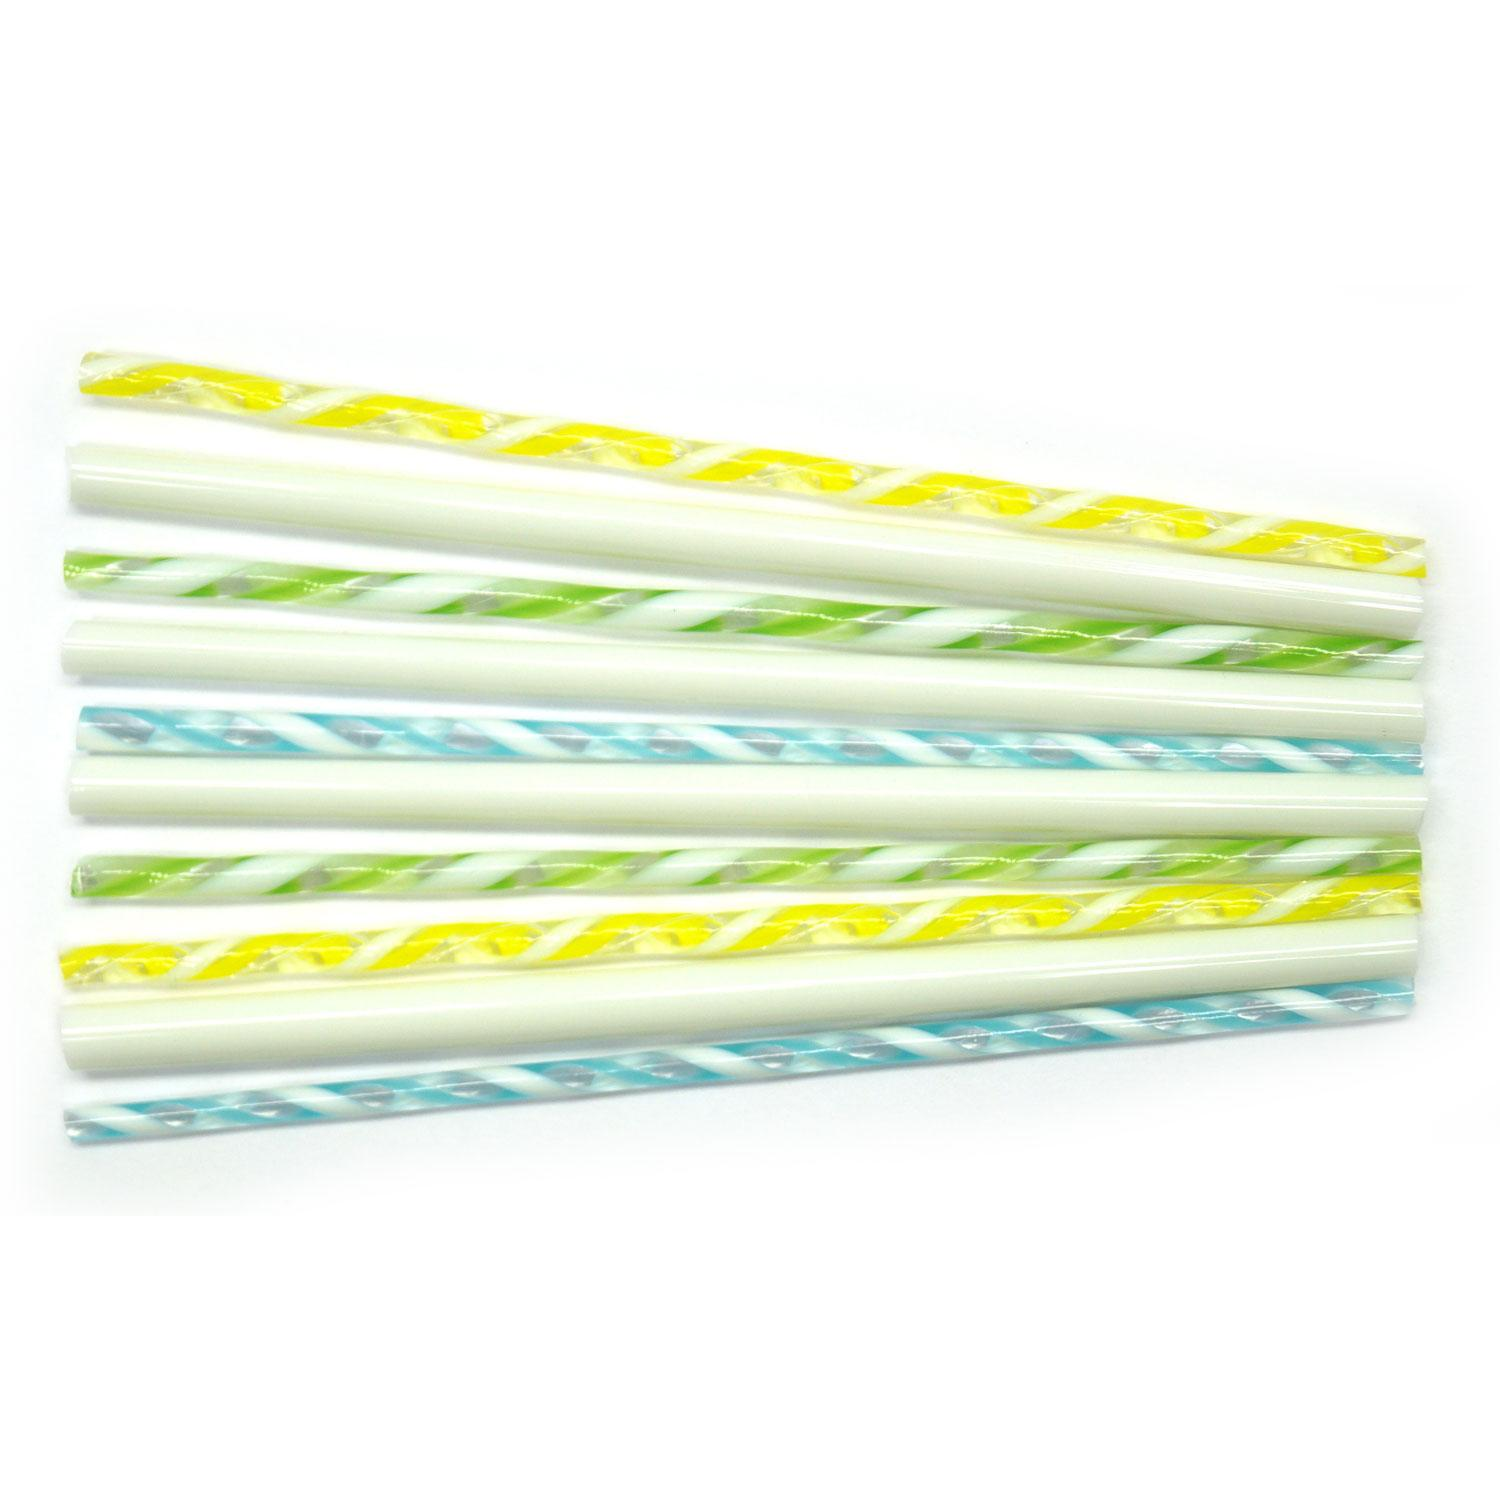 Cools Rod and Twisted Cane Assortment - 96 COE